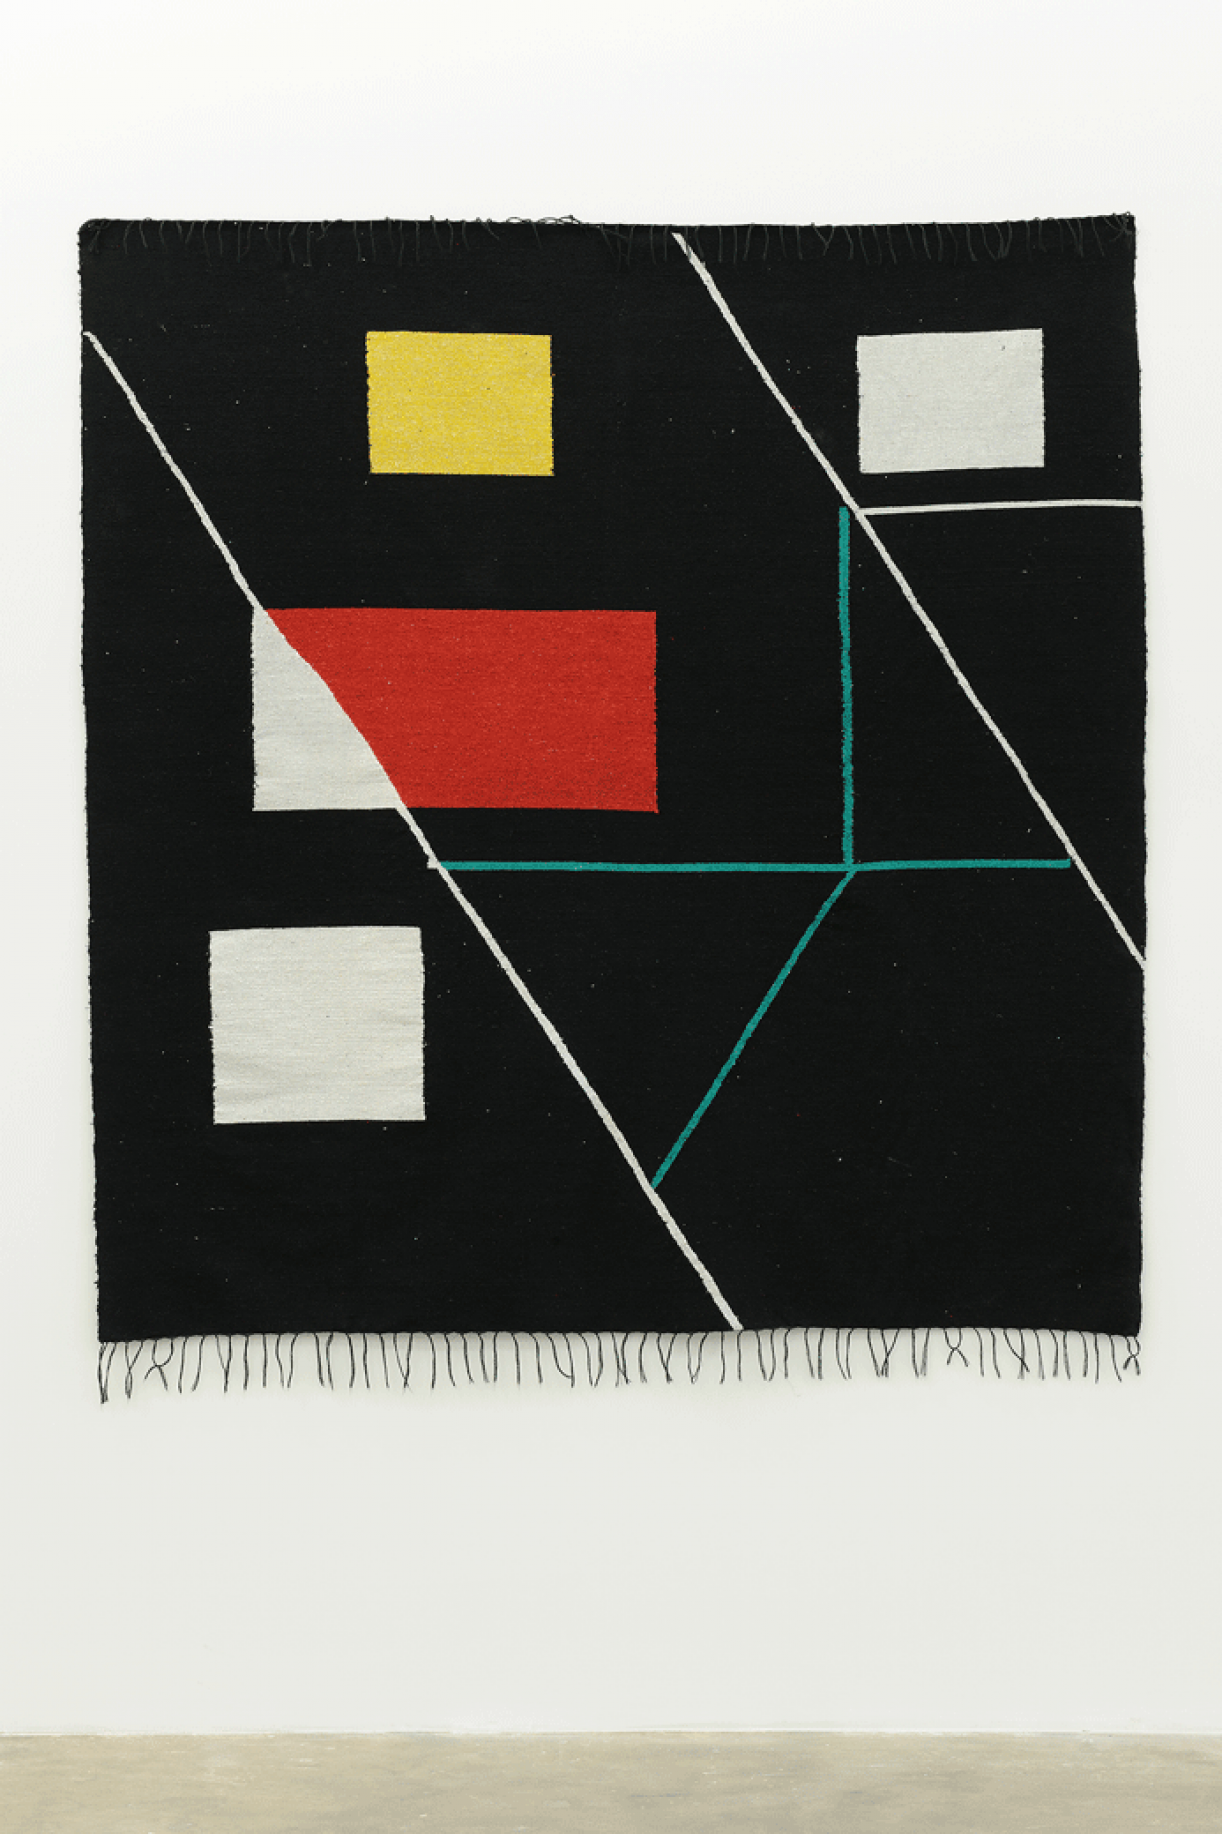 Untitled (carpet handmade in collaboration with Darna's women weaving workshop), 2015, Fabric, 172 x 195 cm